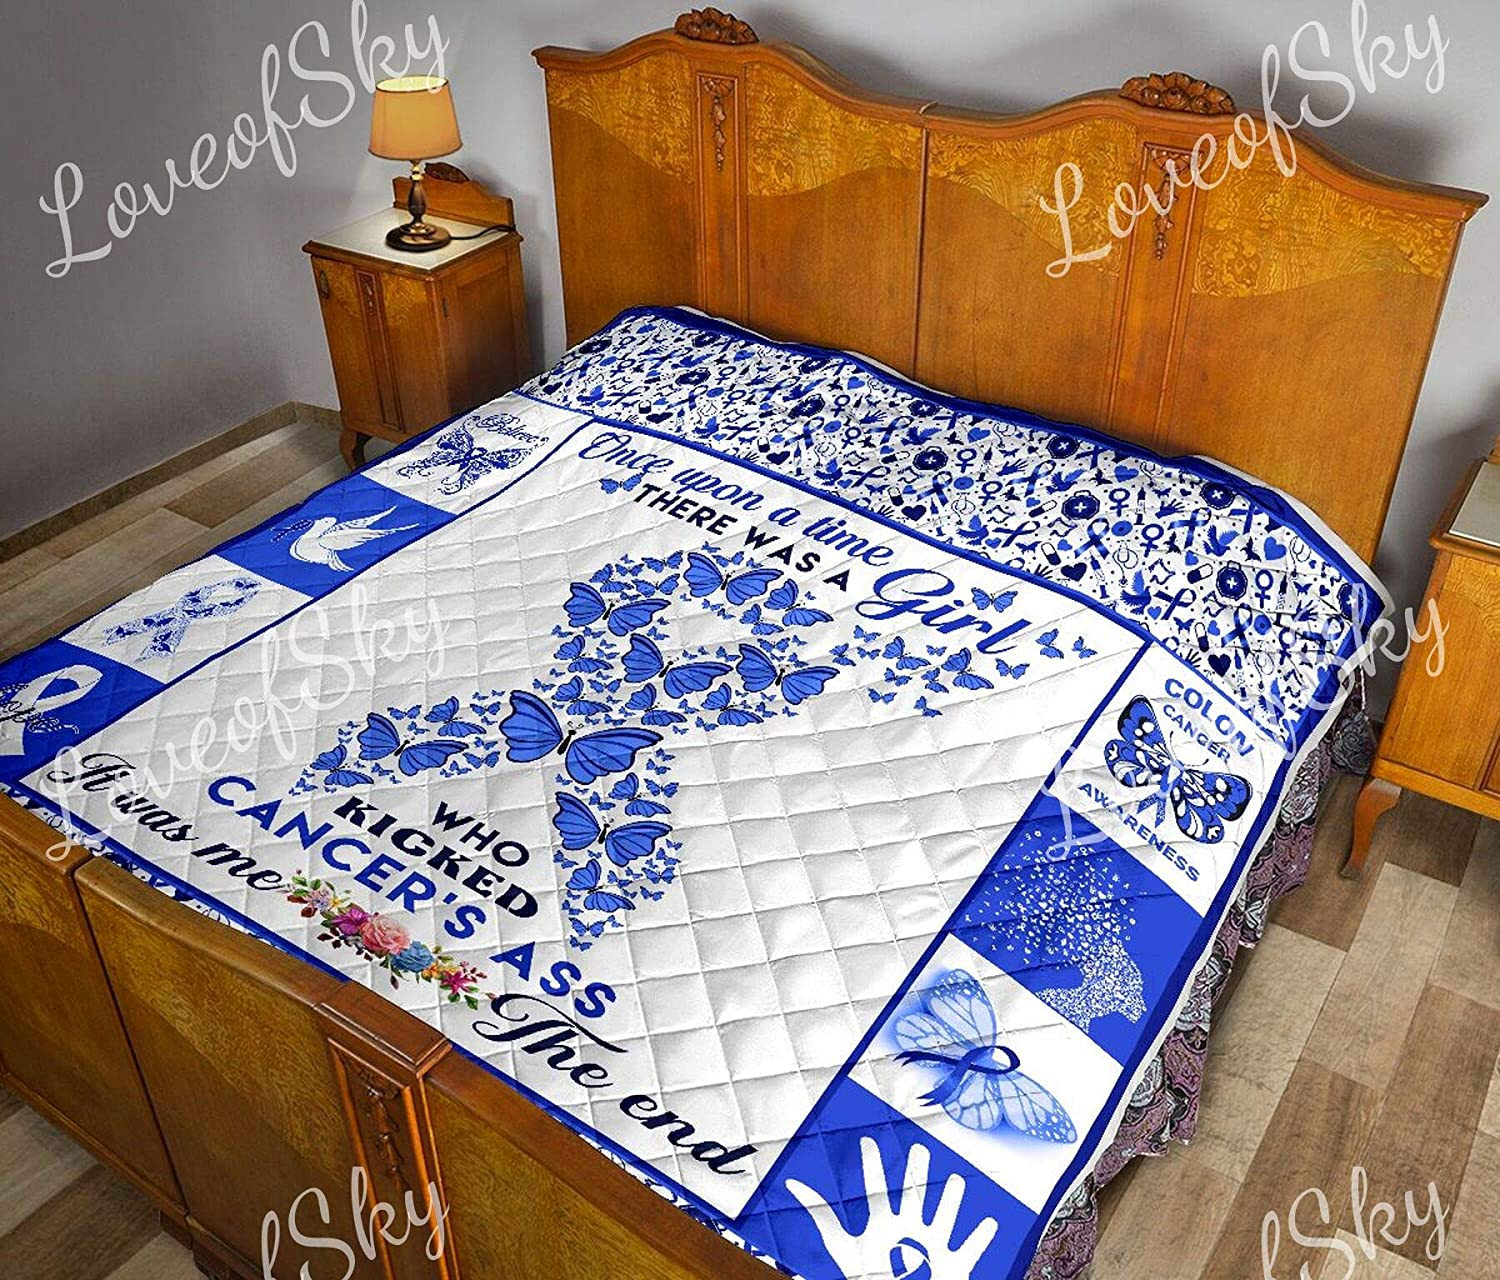 Amazon Com Loveofsky Colon Cancer Quilt Kd King Size All Season Comforter With Cotton Quilts Best Decorative Unique Banklet For Traveling Picnics Beach Trips Gifts Home Kitchen